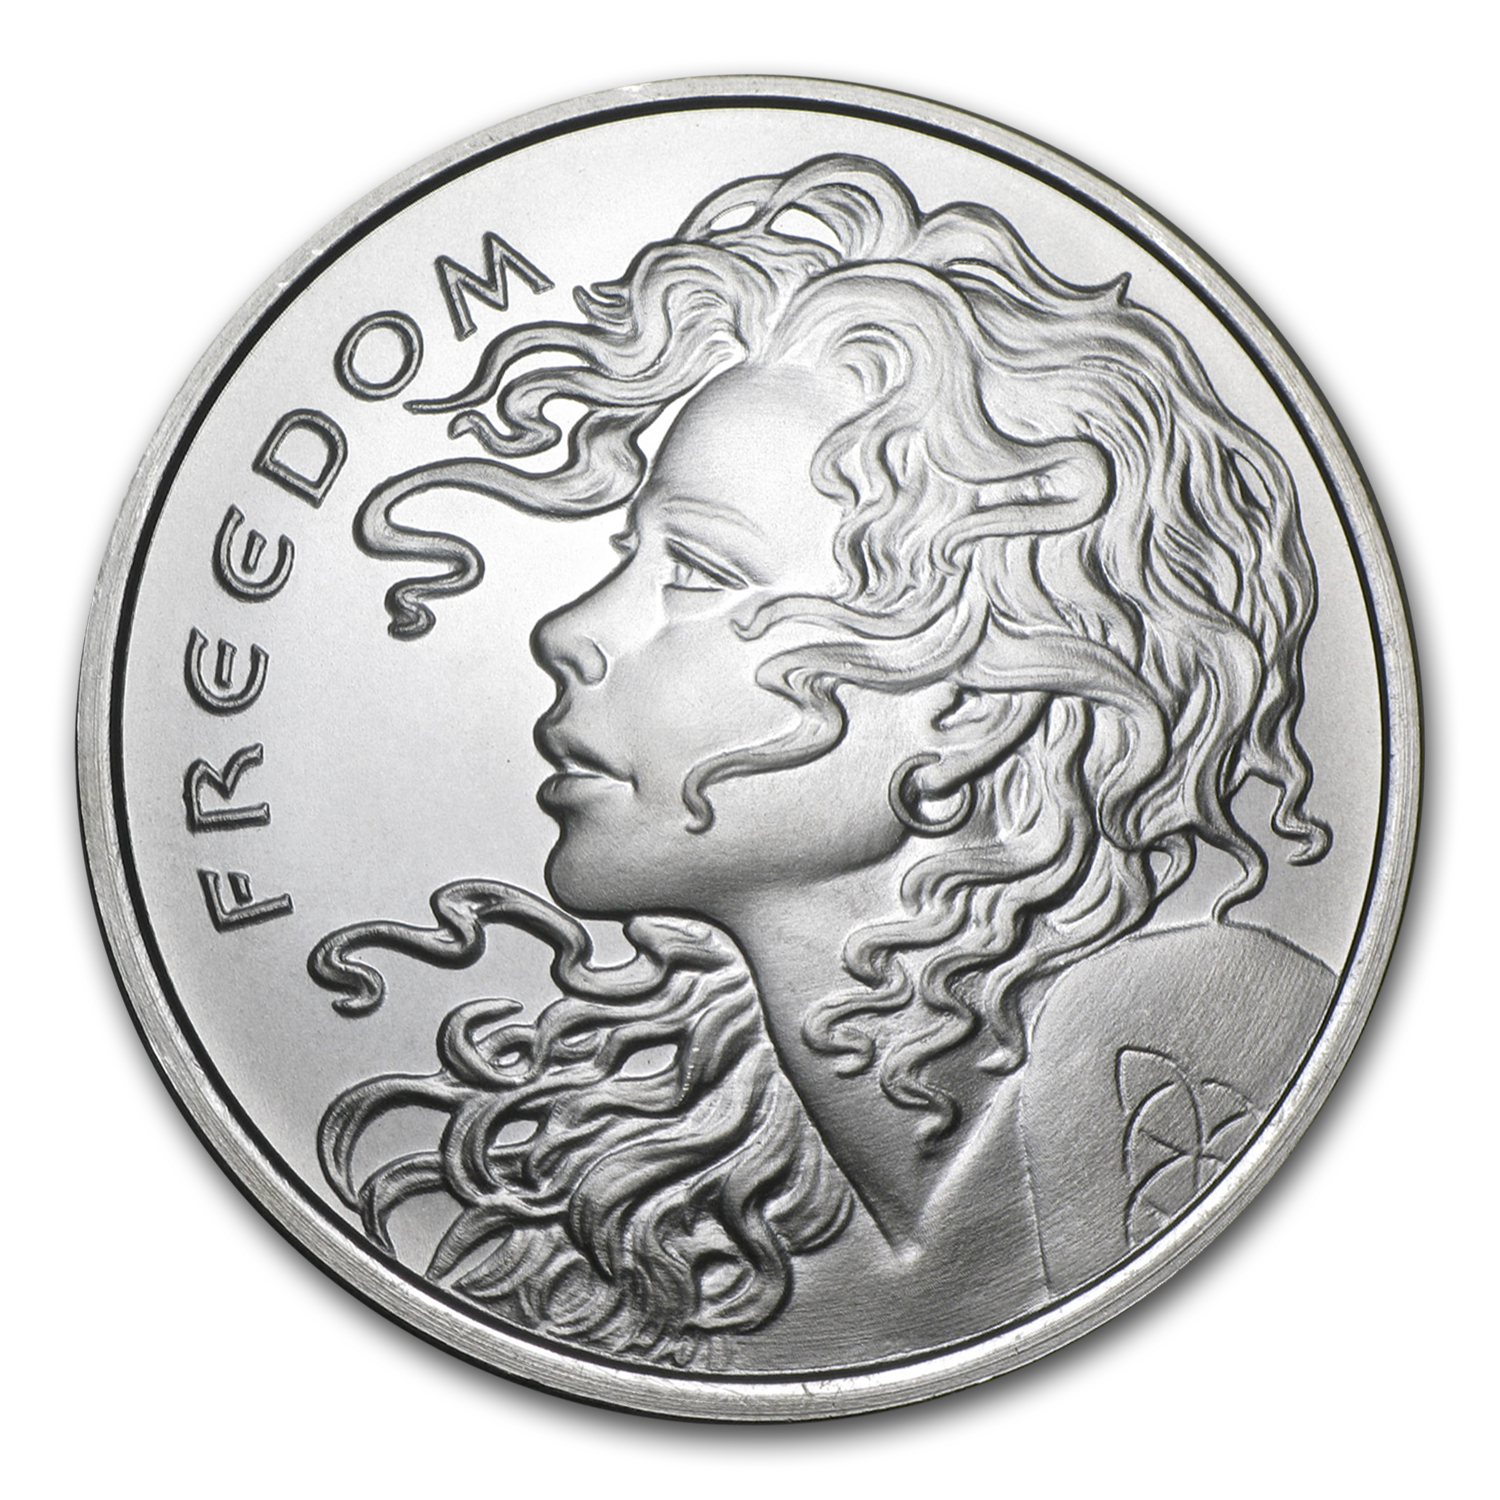 2015 1 oz Silver Round - Freedom Girl